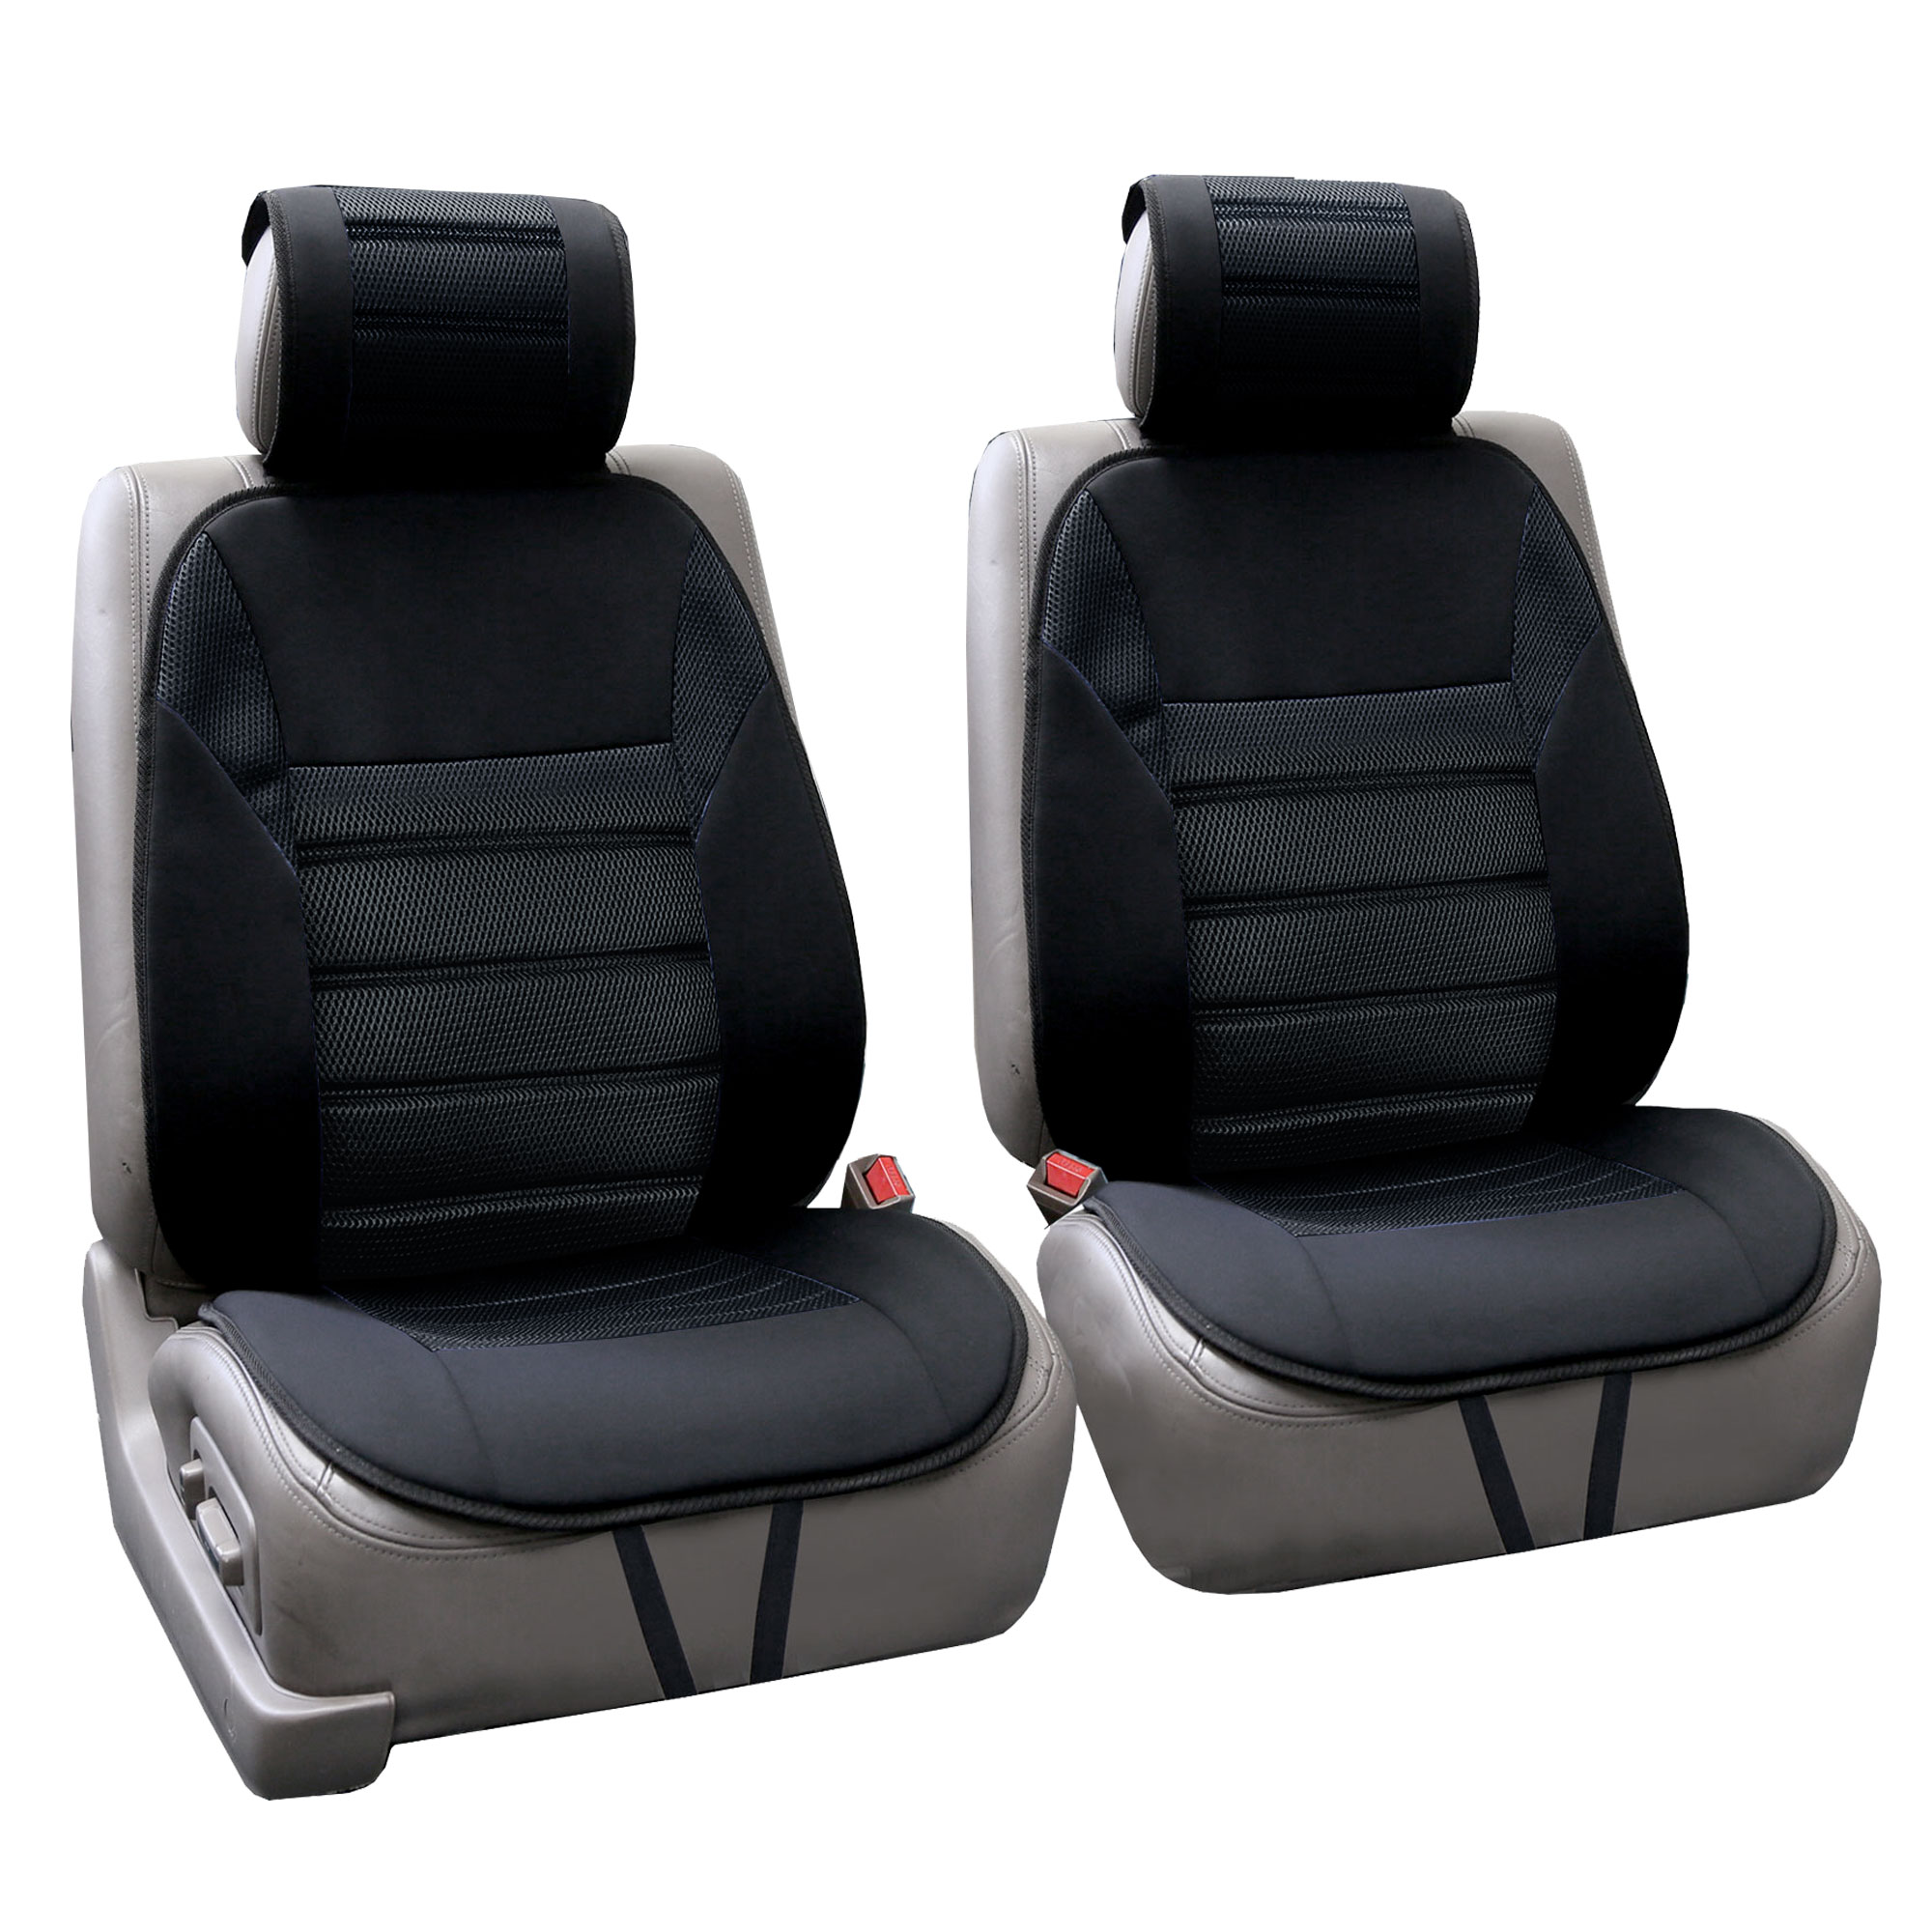 fh fb201112 high quality polyester car seat cushion pads complete set ebay. Black Bedroom Furniture Sets. Home Design Ideas